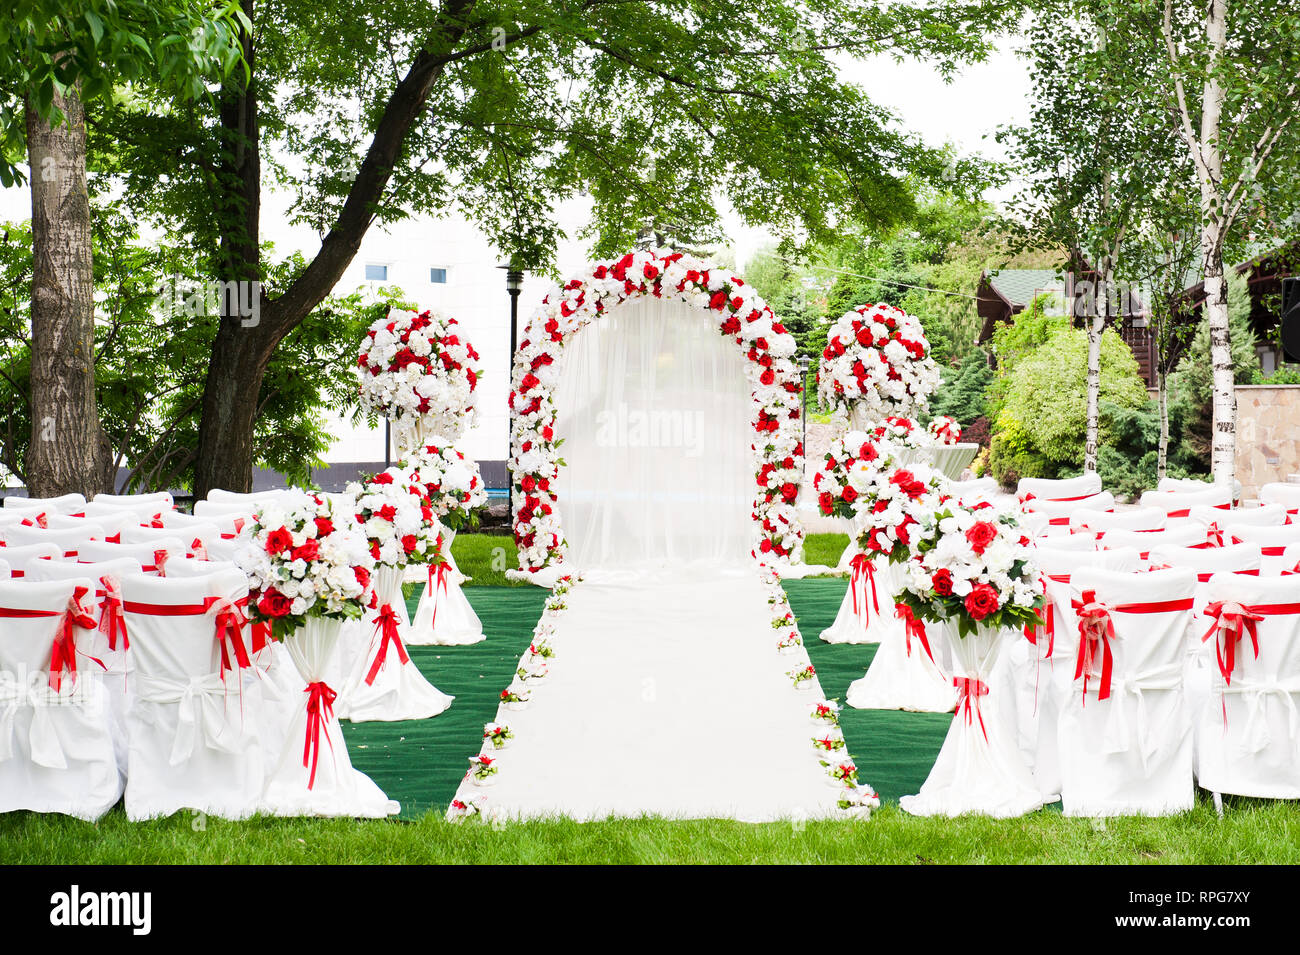 Image of: Wedding Ceremony Outdoors Wedding Ceremony Decoration Beautiful Wedding Decor Flowers Stock Photo Alamy